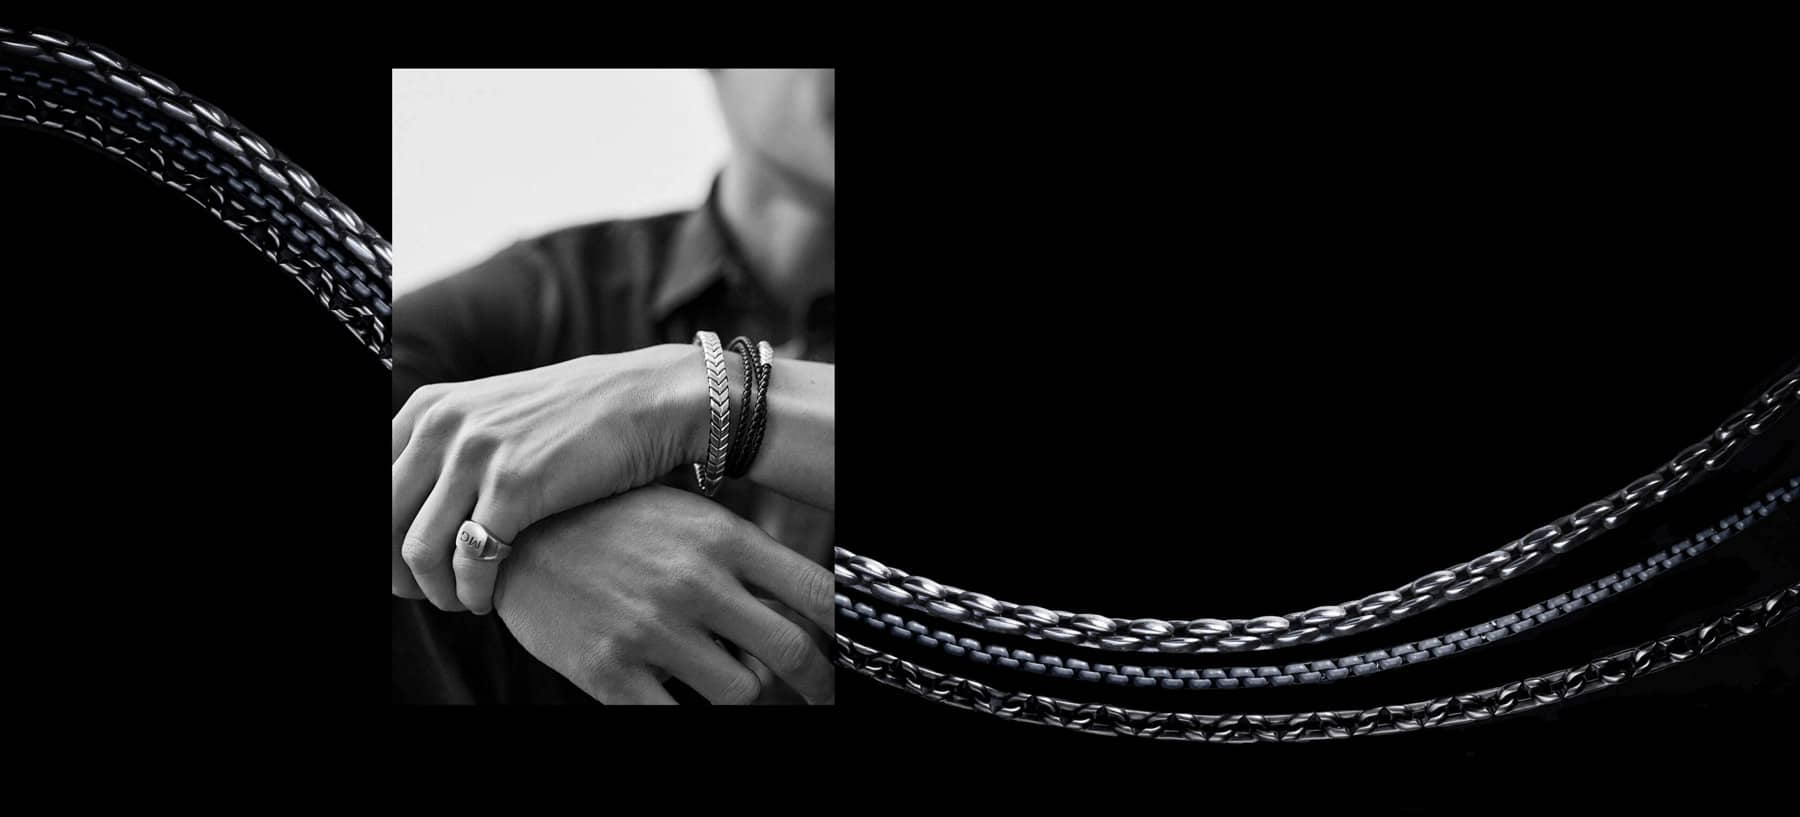 A pull quote by model Miles Garber is placed to the right of a black-and-white photo of him wearing a black shirt and jacket with David Yurman bracelets and a pinky ring. A color image of a David Yurman chains is juxtaposed behind the photo of Miles.